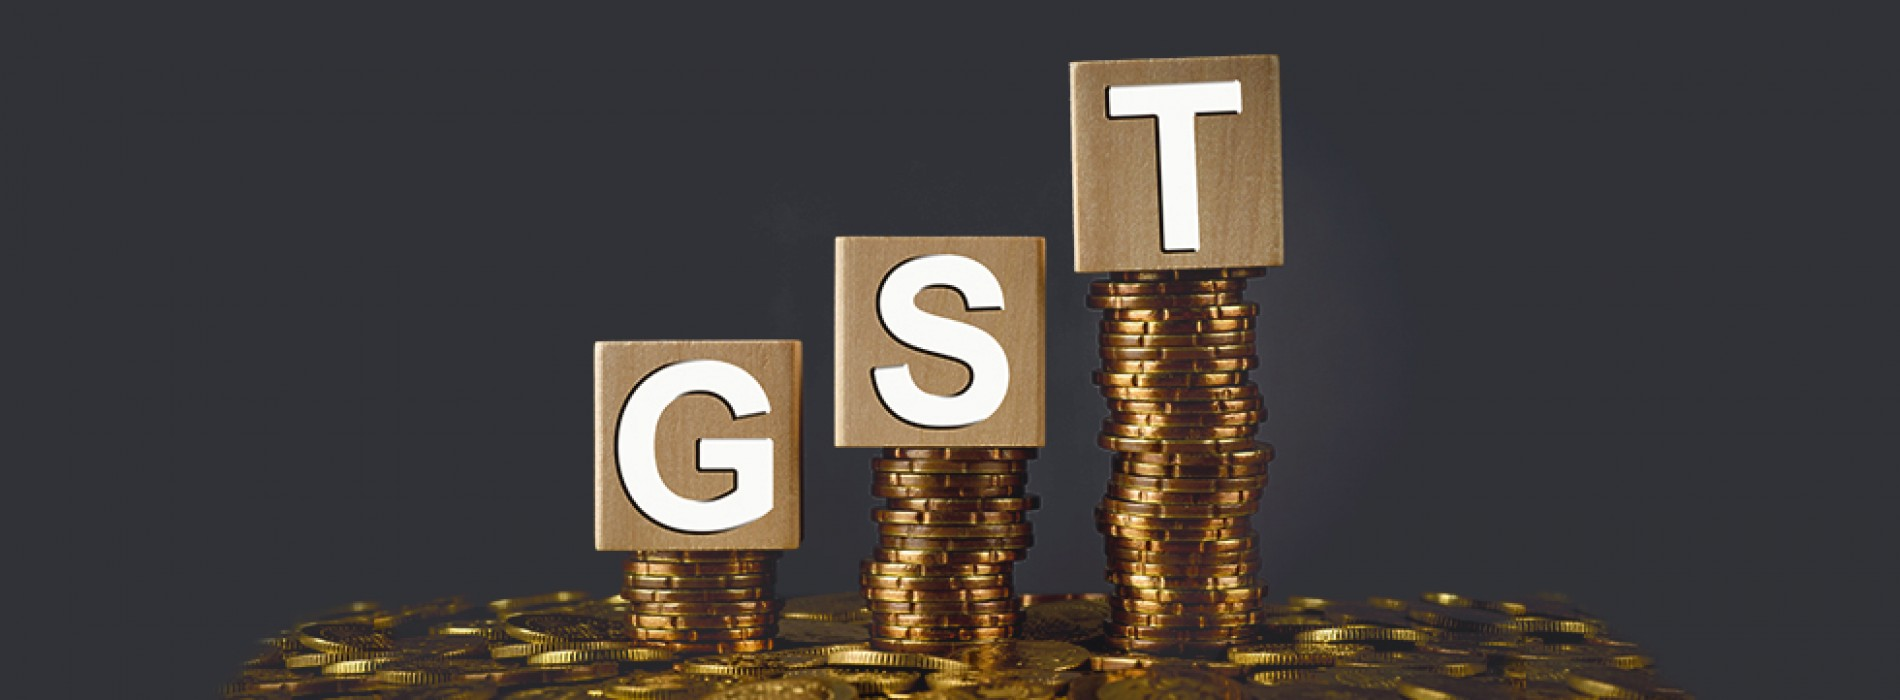 GST, Goods & Services Tax, GST in real estate, one GST in real estate, taxation in property market, Tax burden in home purchase, Stamp duty in house purchase, Indian realty news, India real estate news, Real estate news India, Indian property market news, Track2Realty